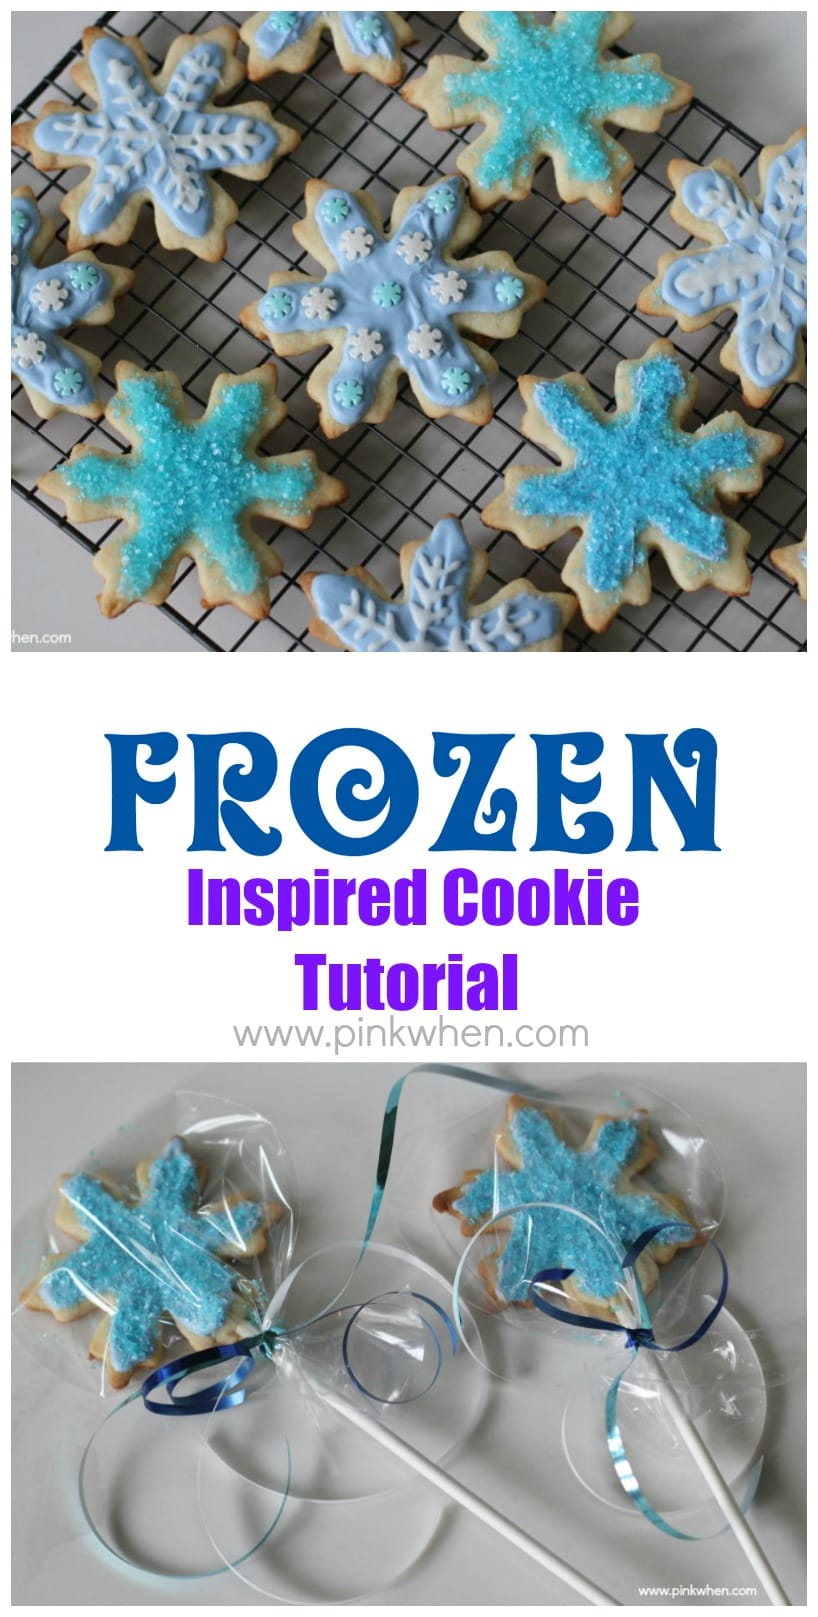 FROZEN Inspired Cookie Tutorial with Video from PinkWhen.com